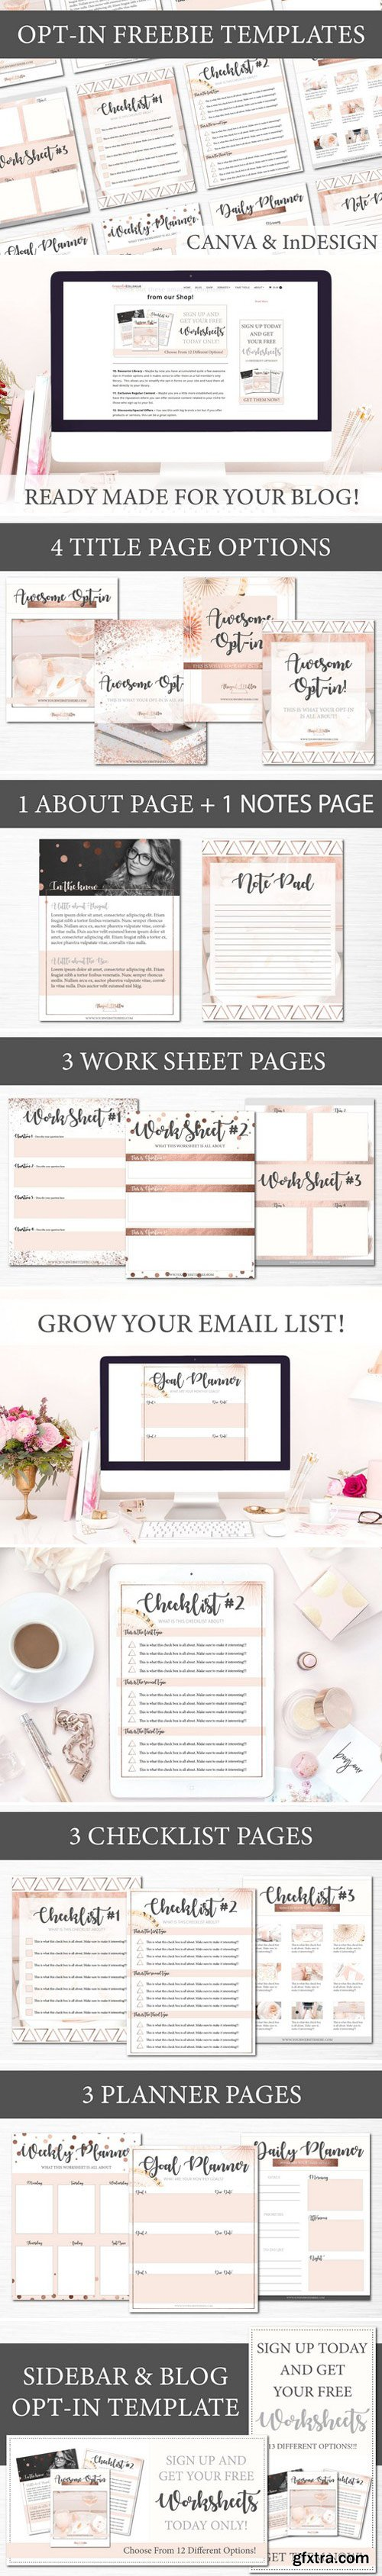 CM - Opt-in Freebie Templates - Rose Gold 2405418